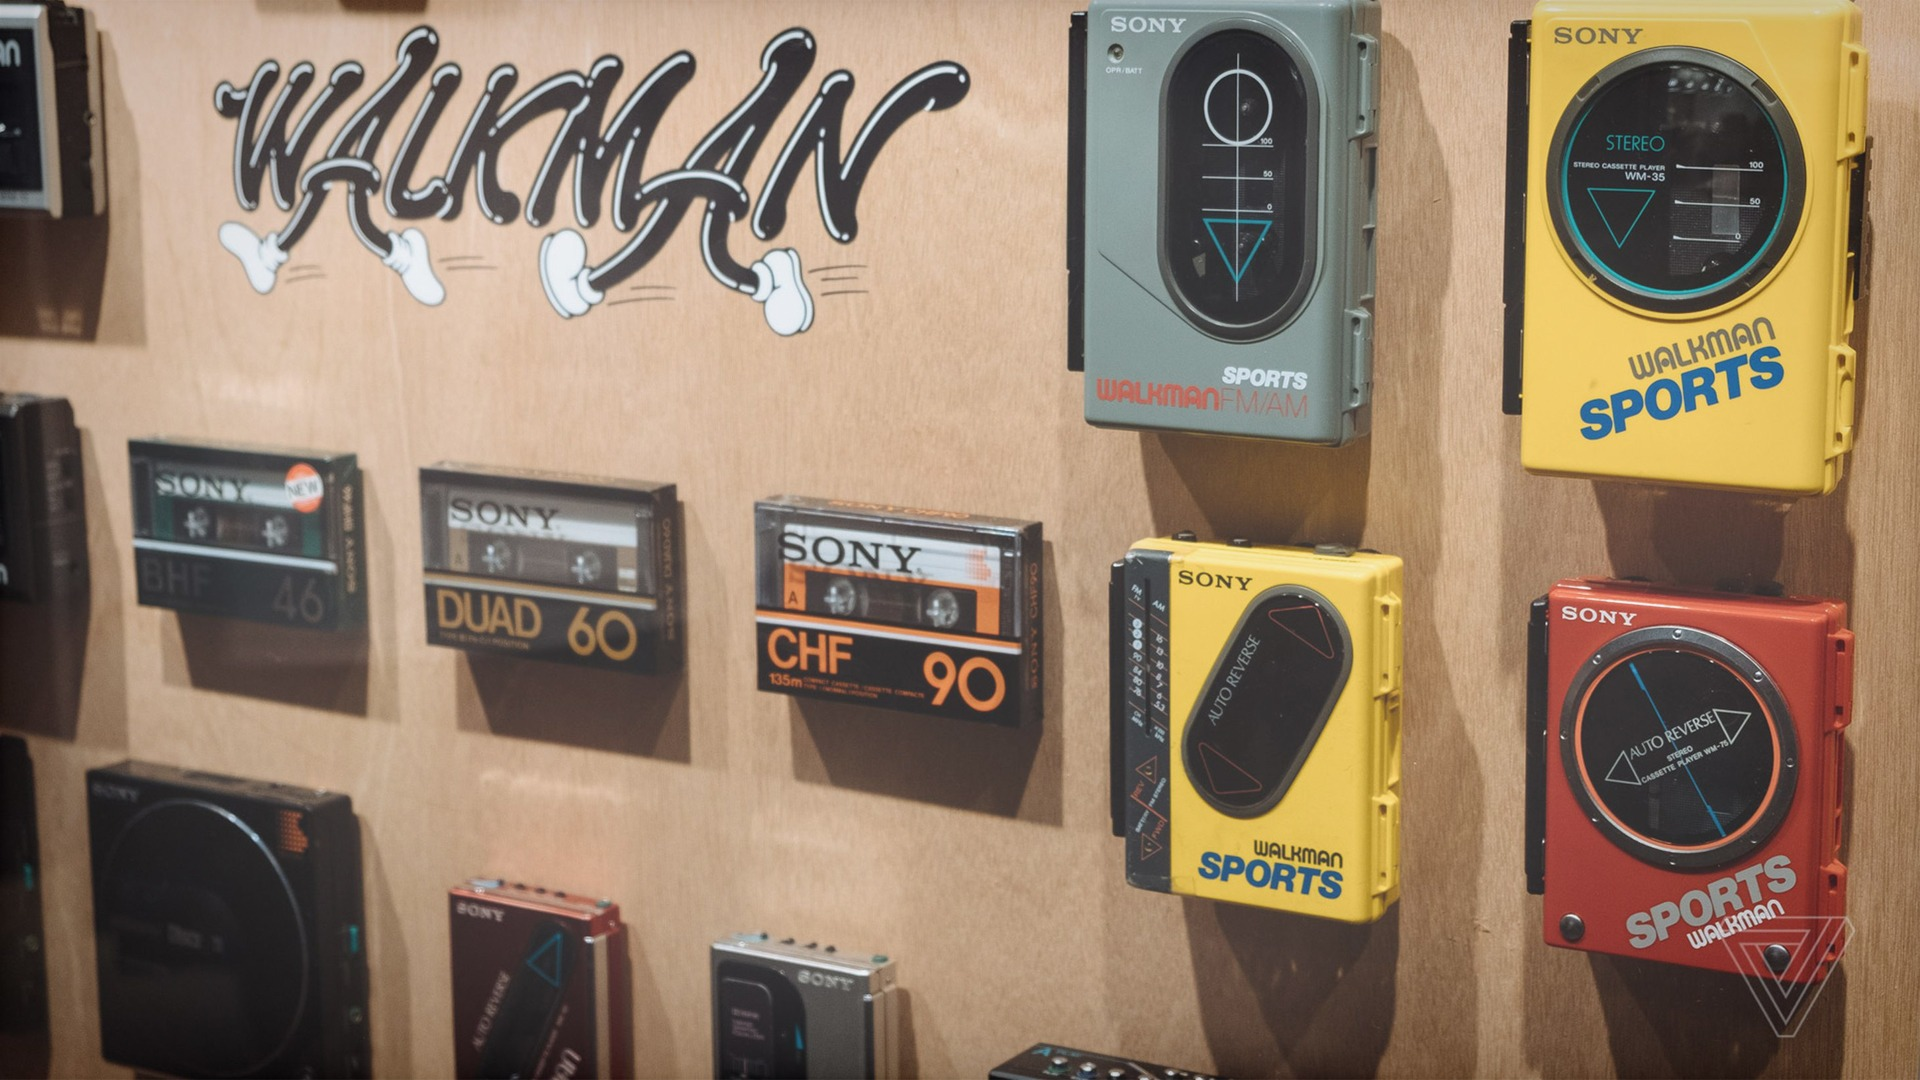 Sony Walkman Design